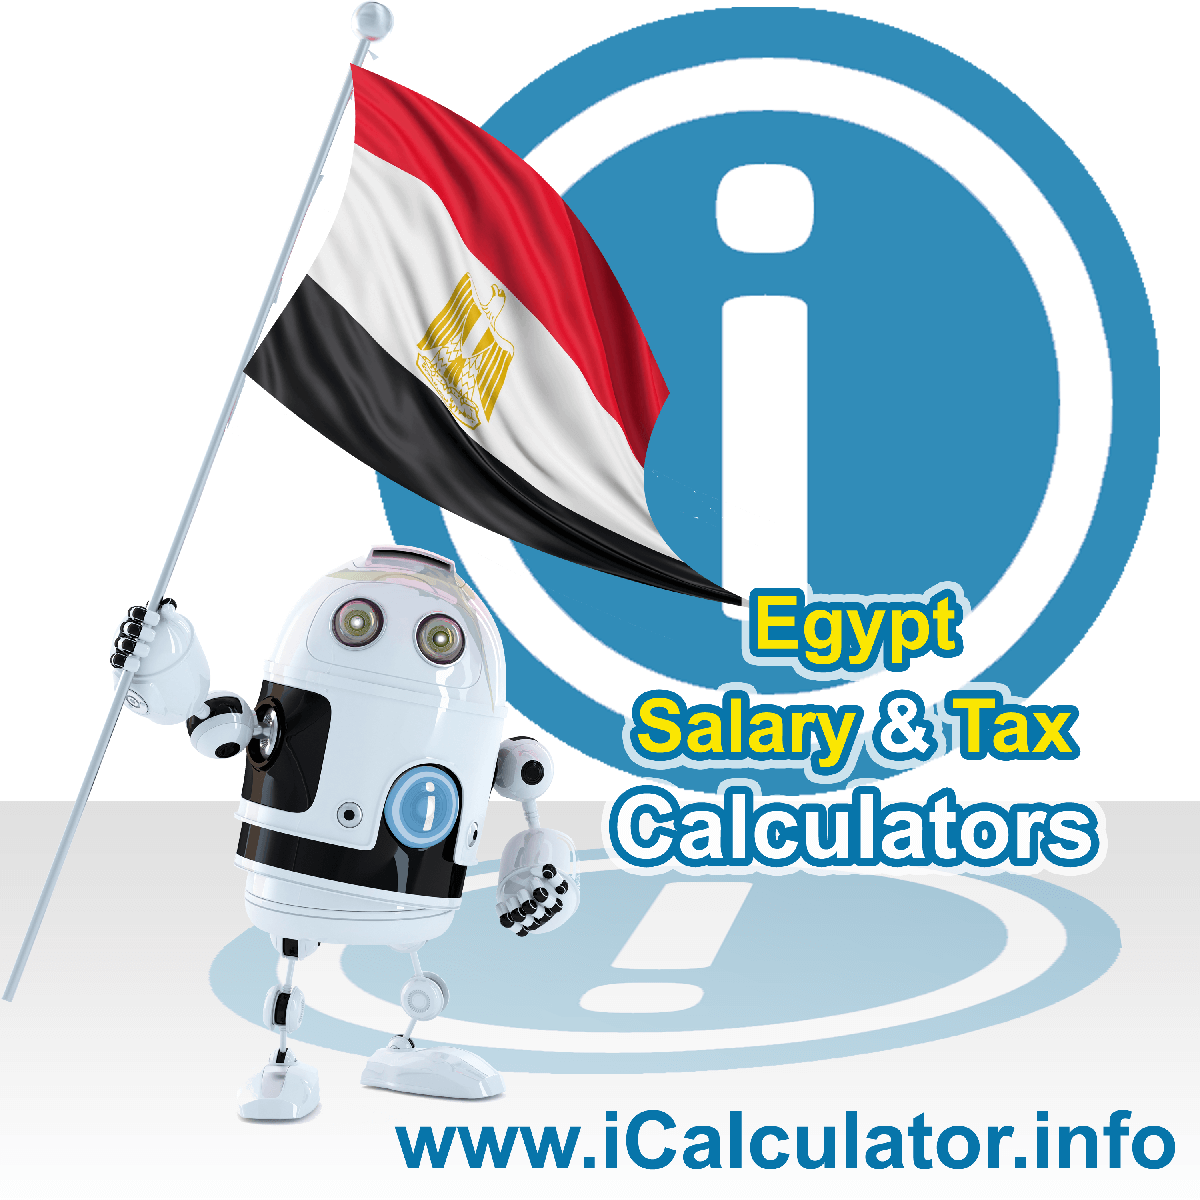 Egypt Wage Calculator. This image shows the Egypt flag and information relating to the tax formula for the Egypt Tax Calculator